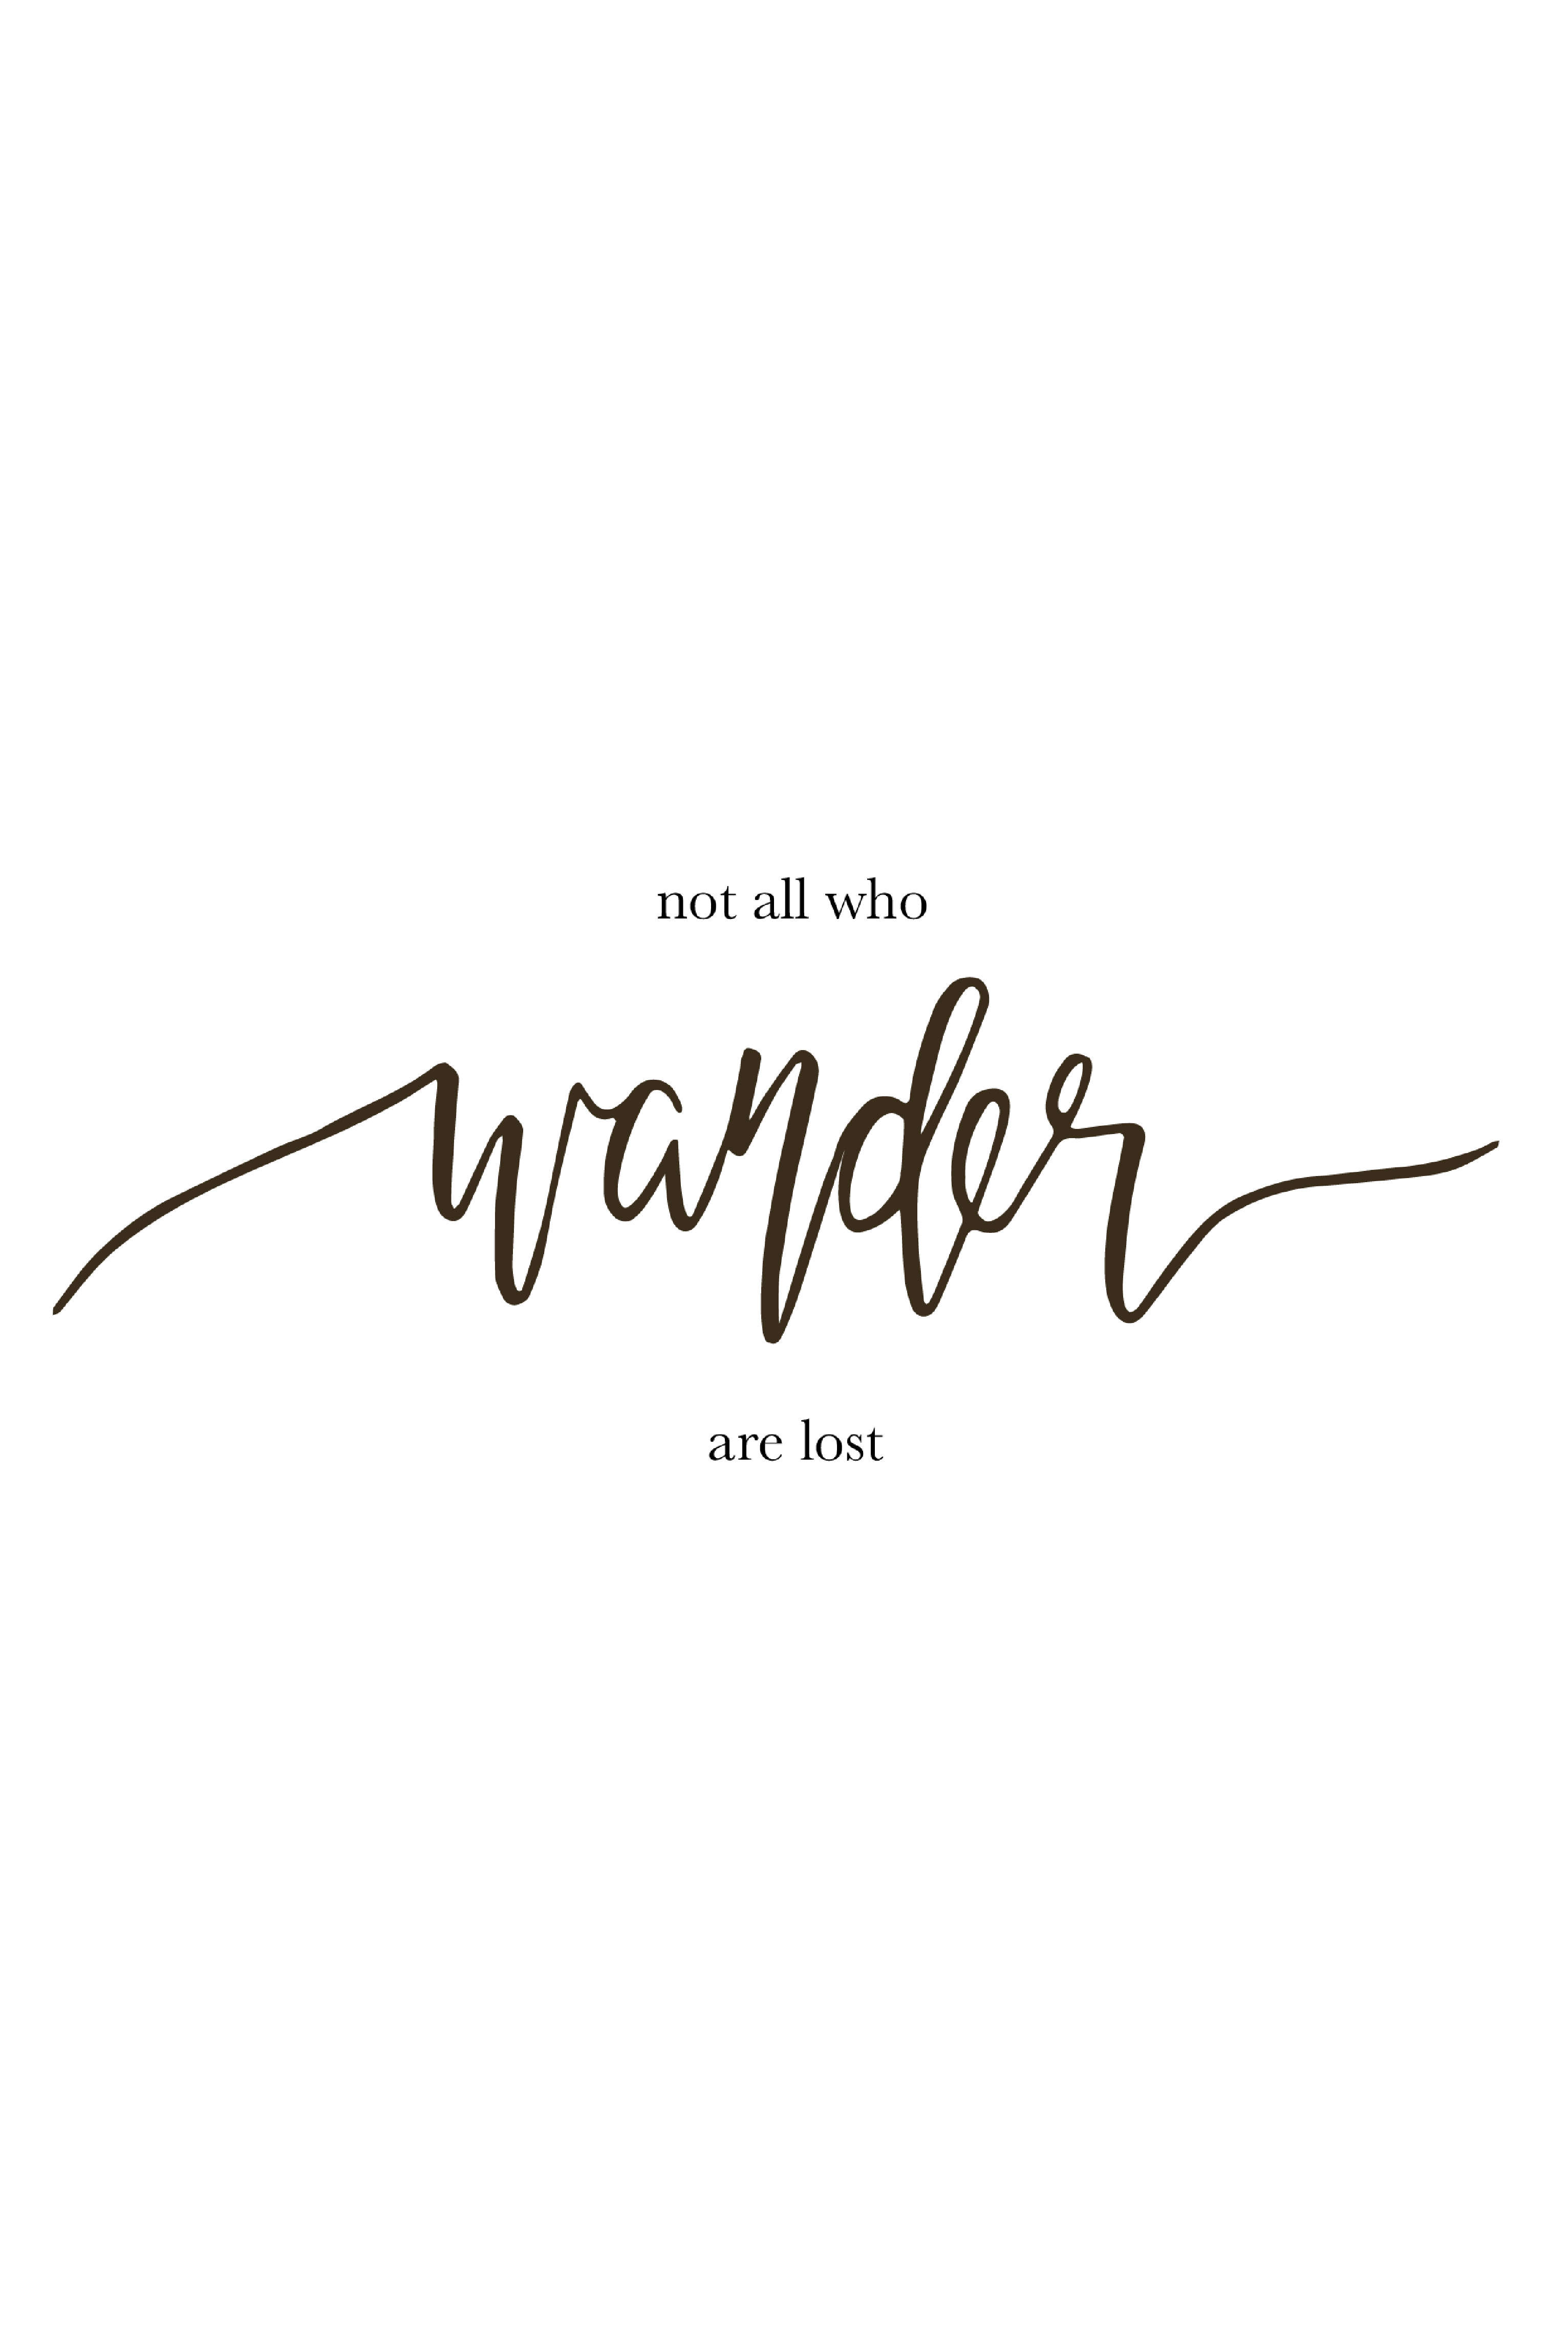 click through to see the entire collection not all who wander are